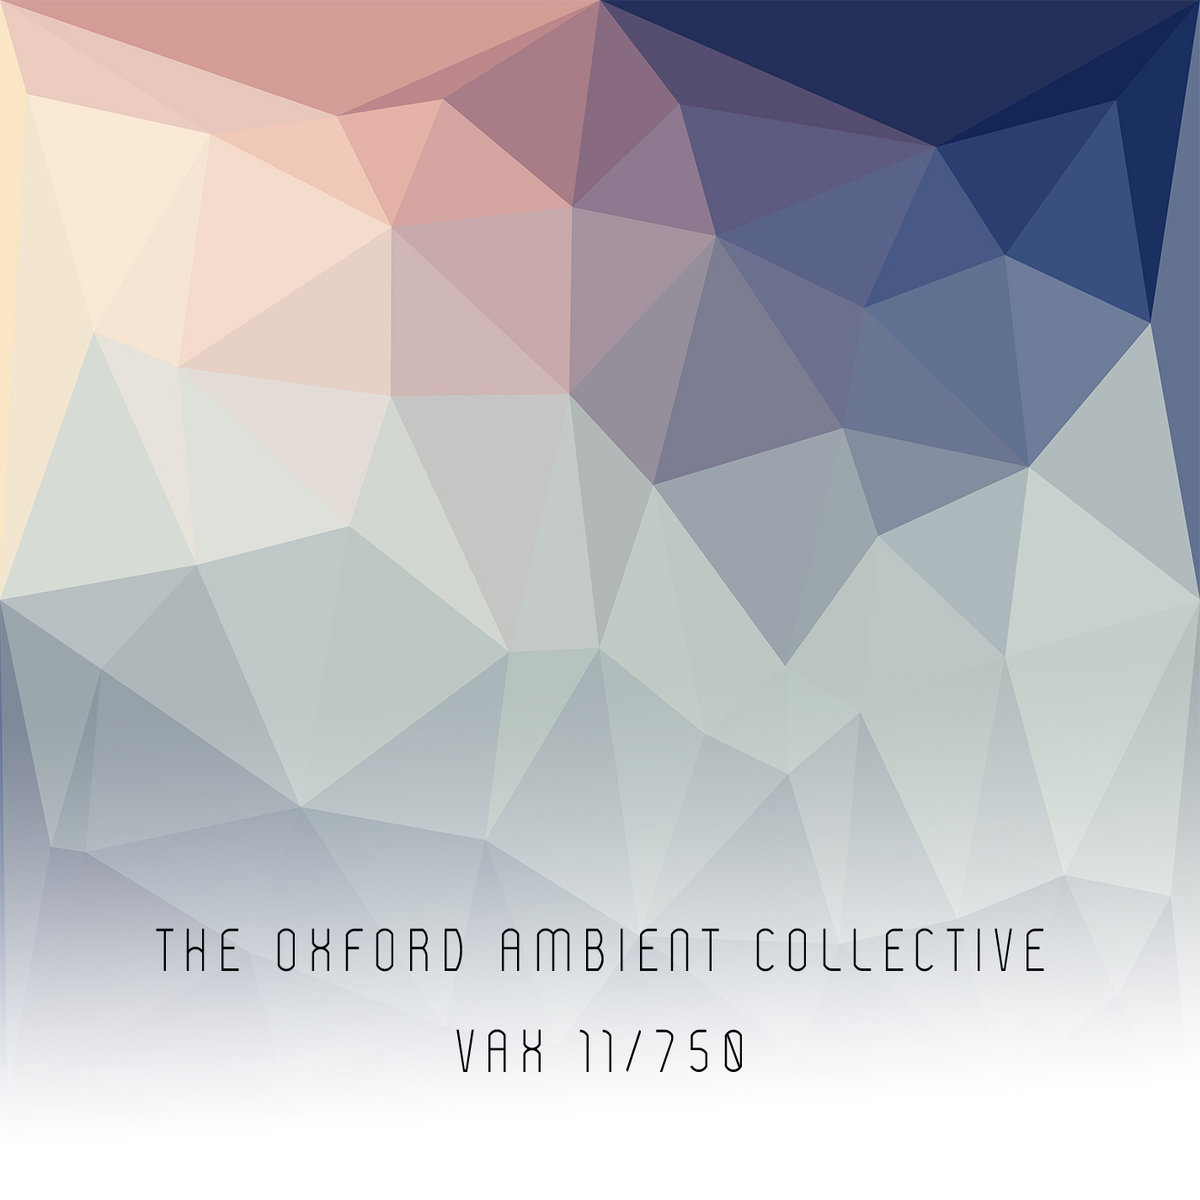 EBCDIC to ASCII Conversion | The Oxford Ambient Collective